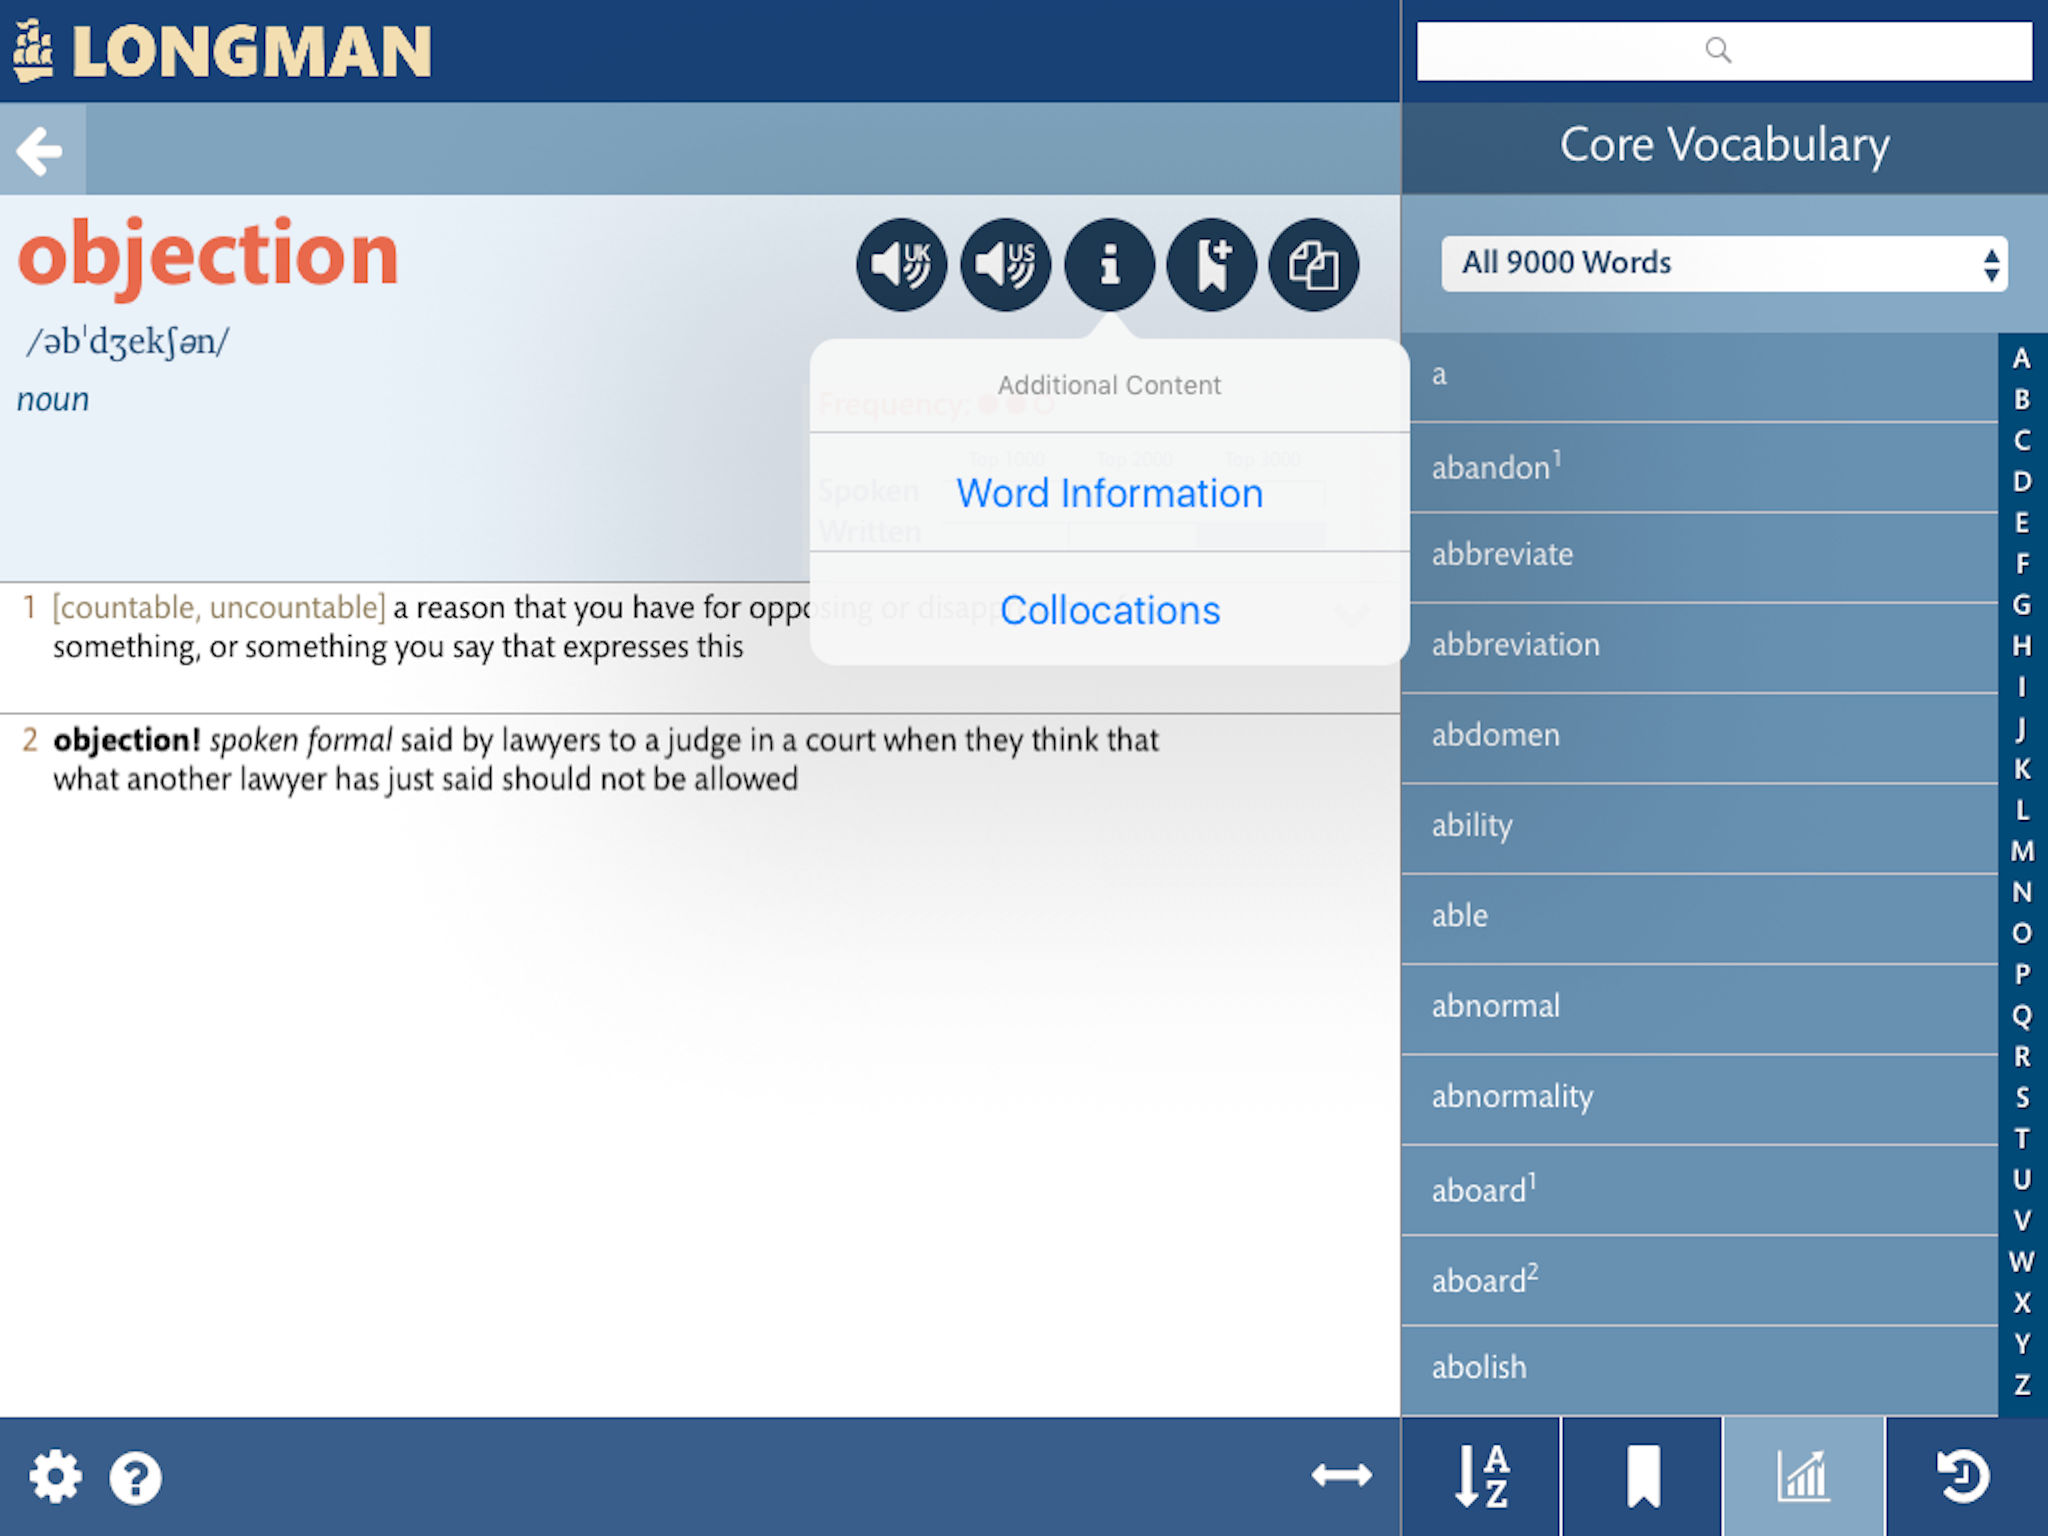 longman dictionary free download app